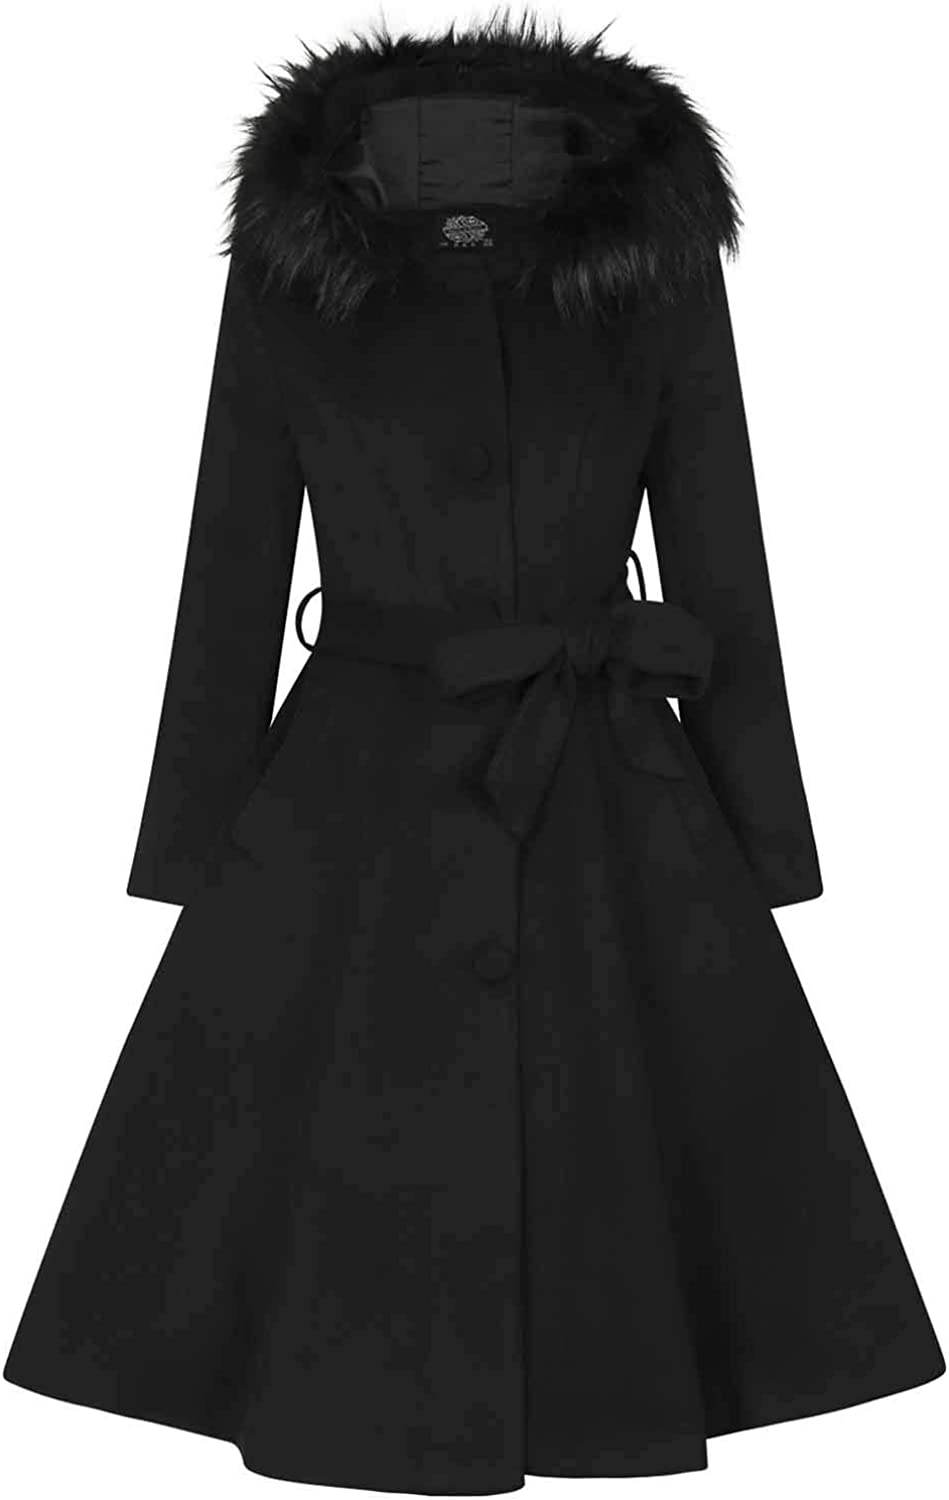 Vintage Coats & Jackets | Retro Coats and Jackets Hearts and Roses London Black Faux Fur Wool Hooded Retro Vintage Ella Swing Coat £89.99 AT vintagedancer.com